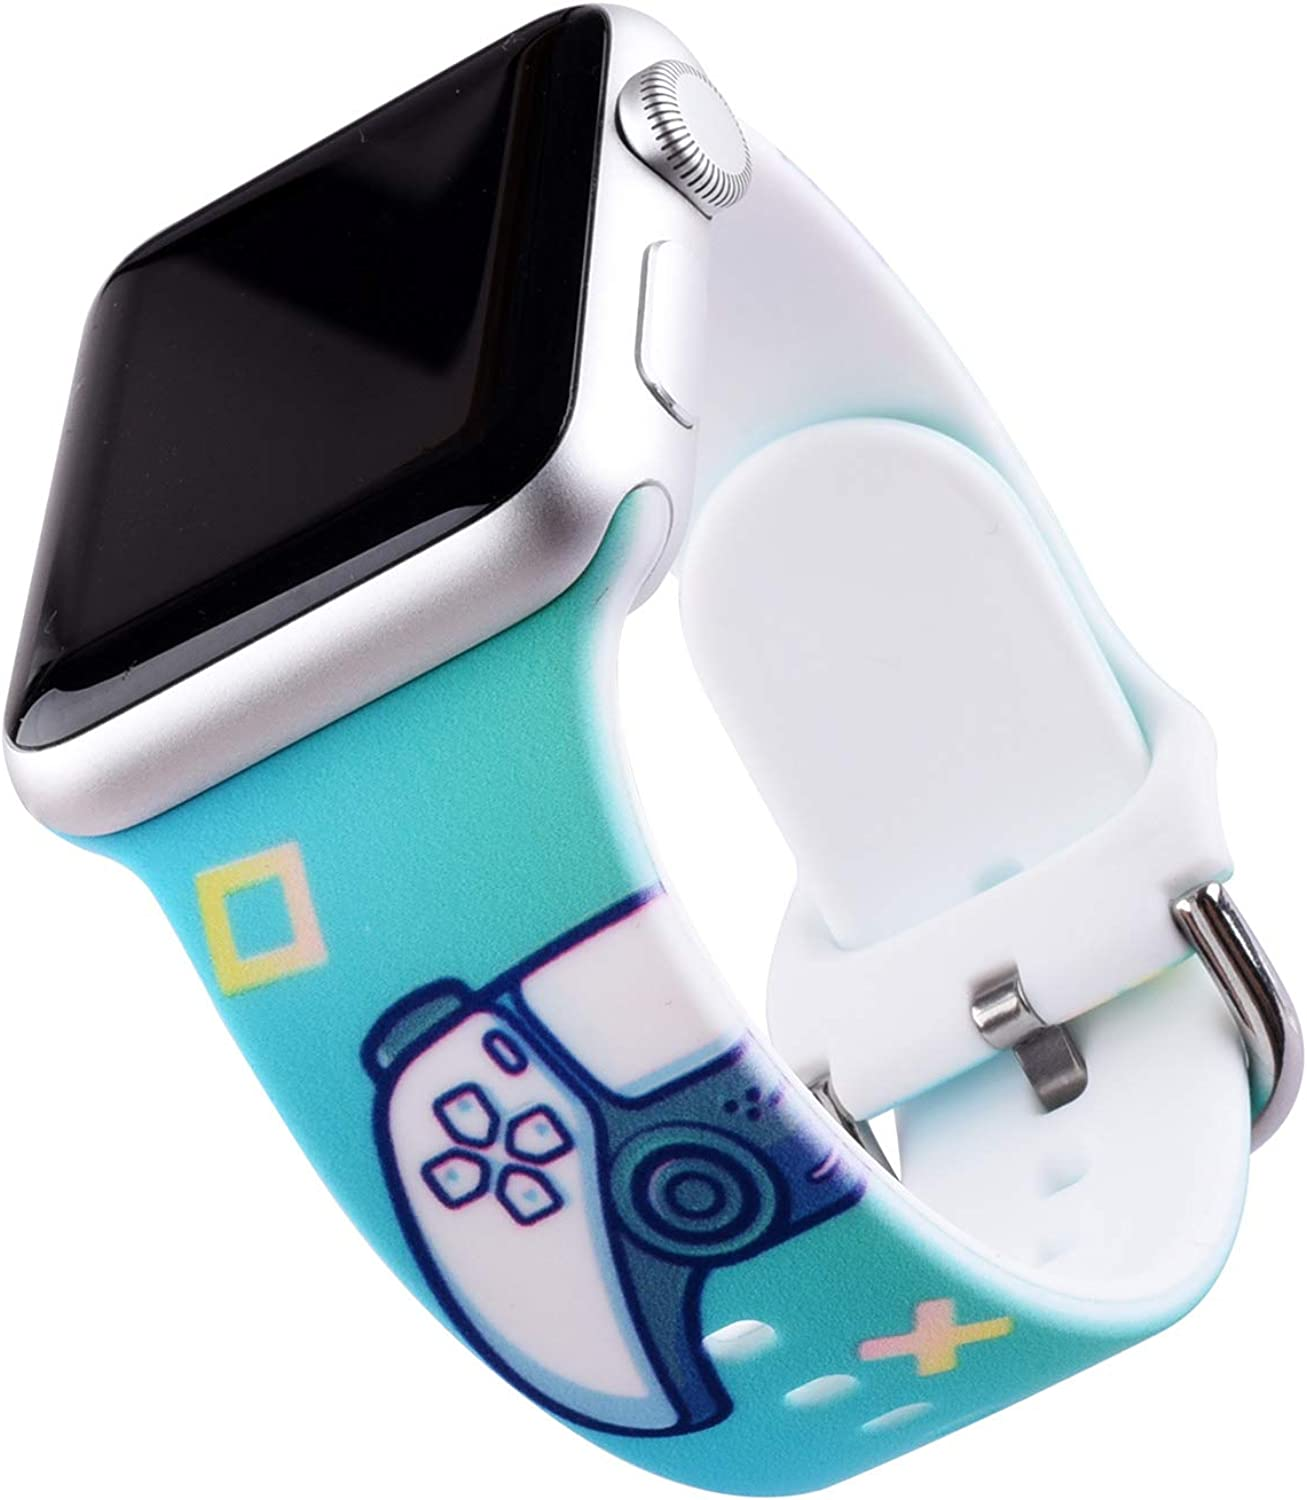 Game Controller Design Compatible with Apple Watch Band 38mm 40mm 42mm 44mm, Game PS5 Strap with Soft Band Wristband for Kids Boys Girls Men Women friends iWatch SE Series 6/5/4/3/2/1